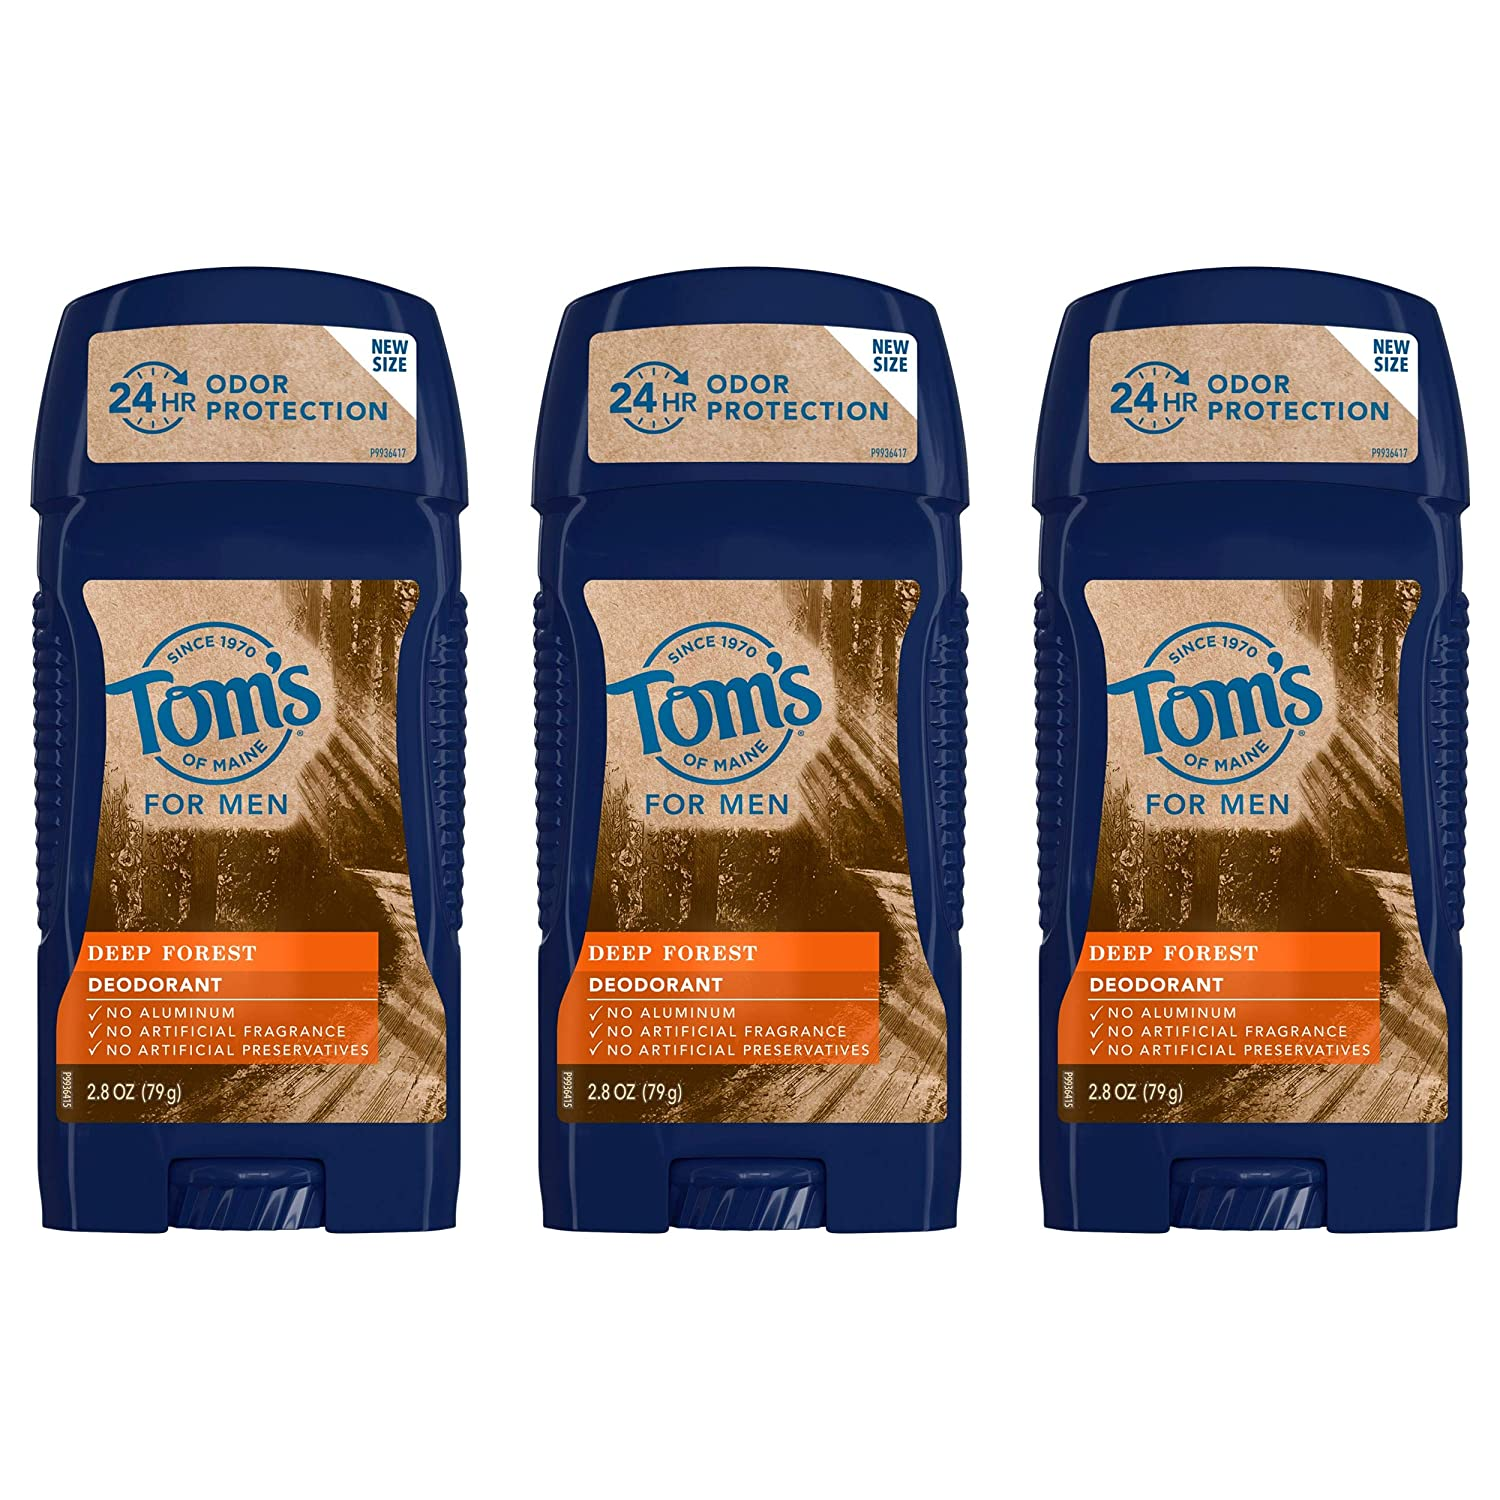 best natural deodorants for men - Tom's of Maine deodorant (stick 3 pack in deep forest scent)